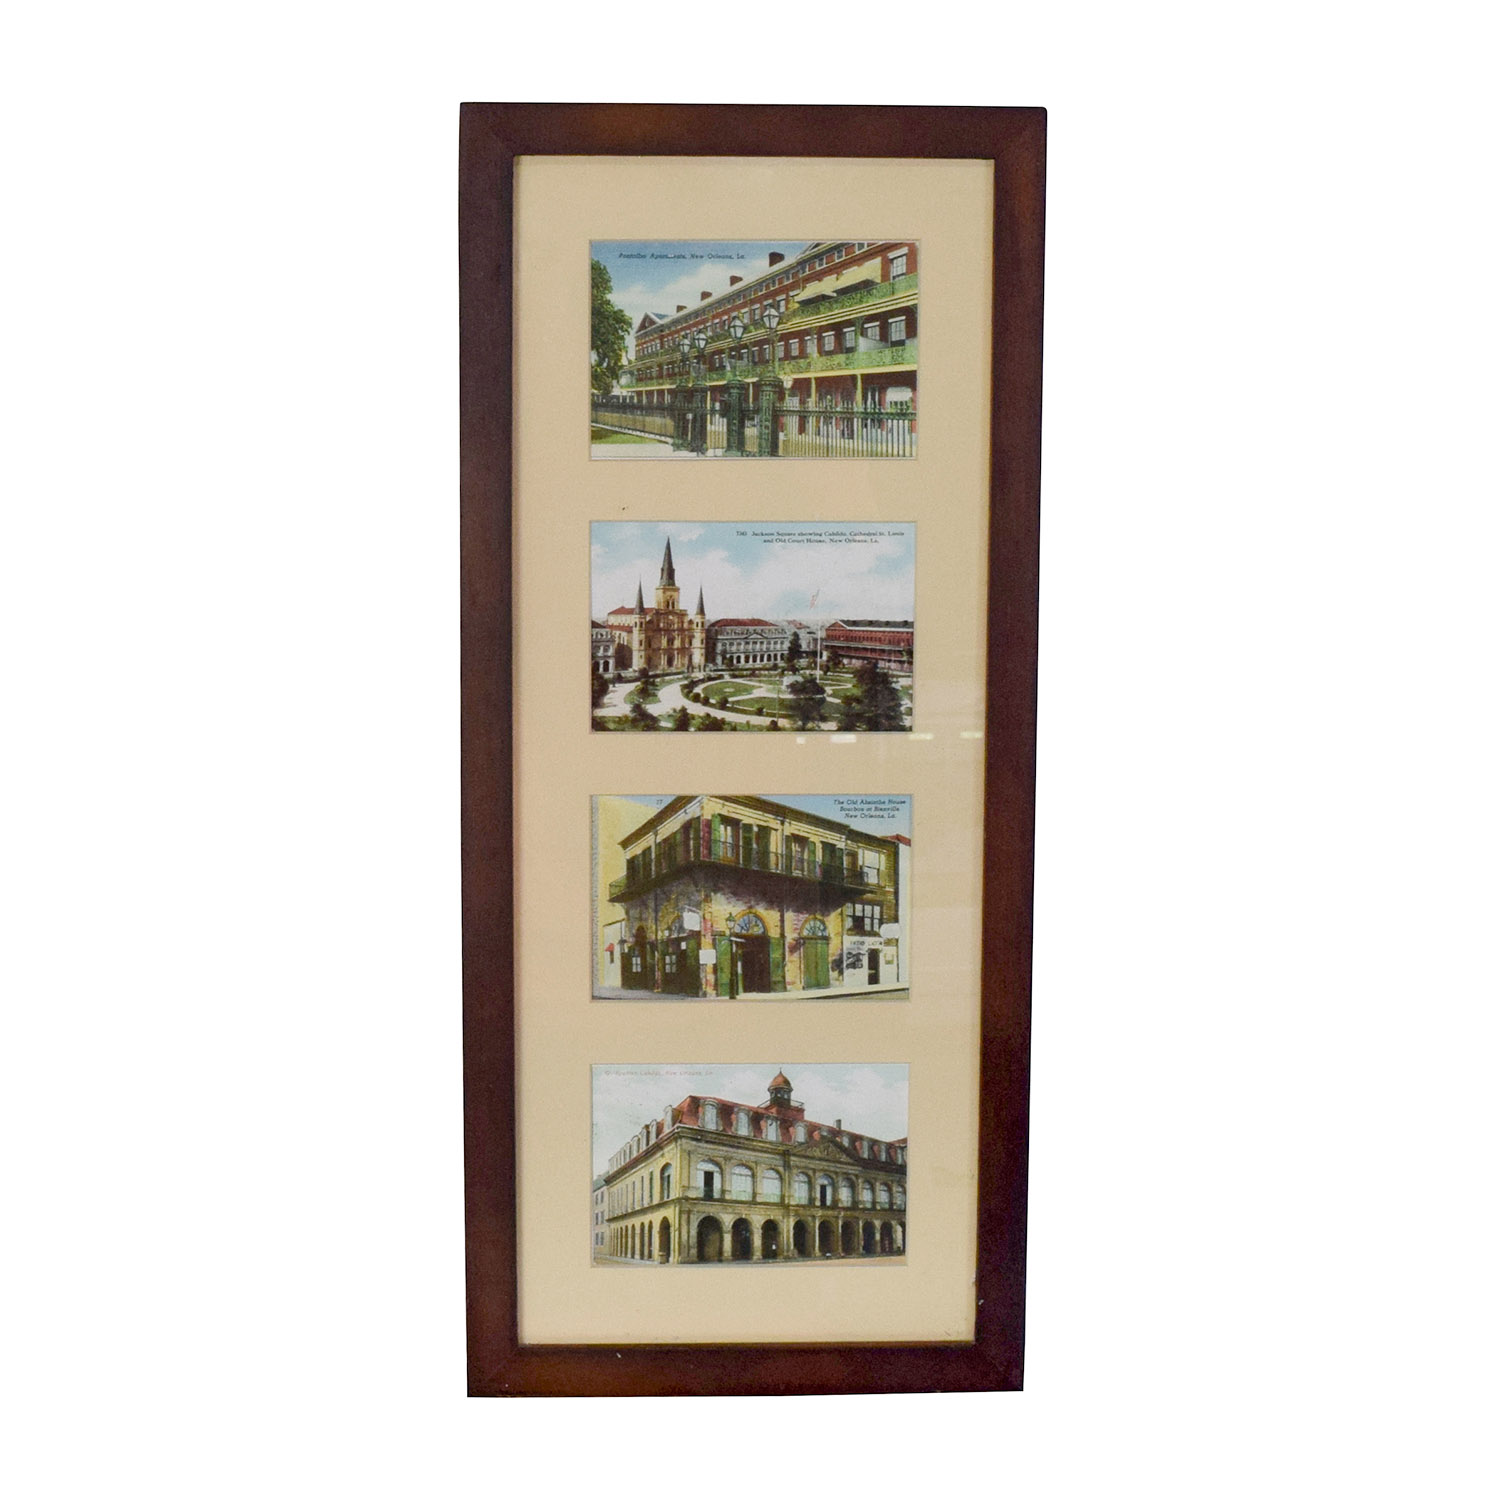 New Orleans Framed Prints coupon